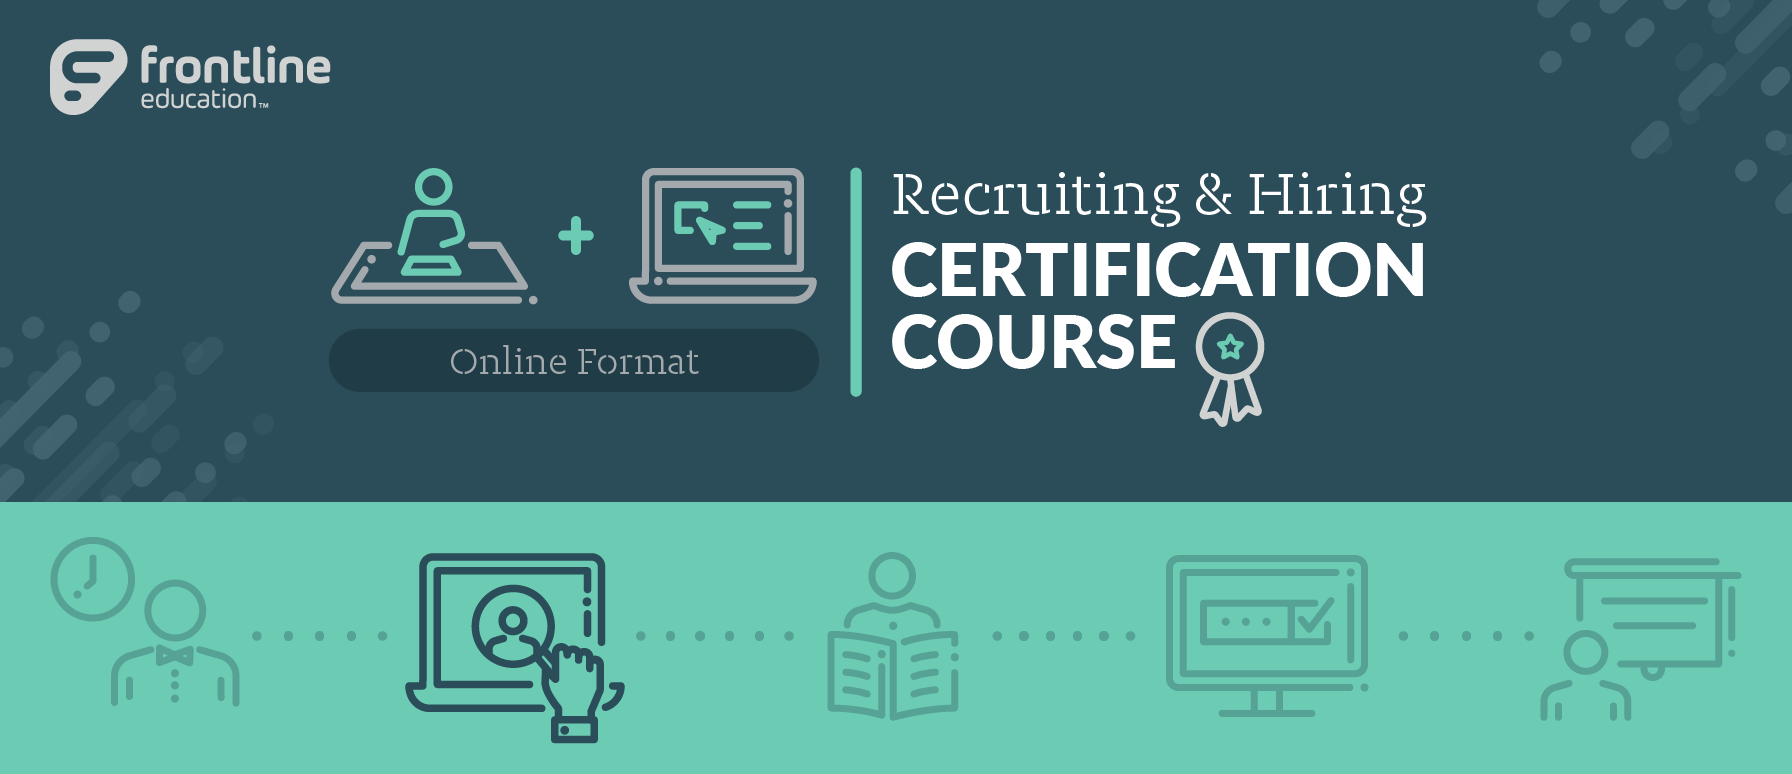 Recruiting & Hiring Certification Course - Online Format